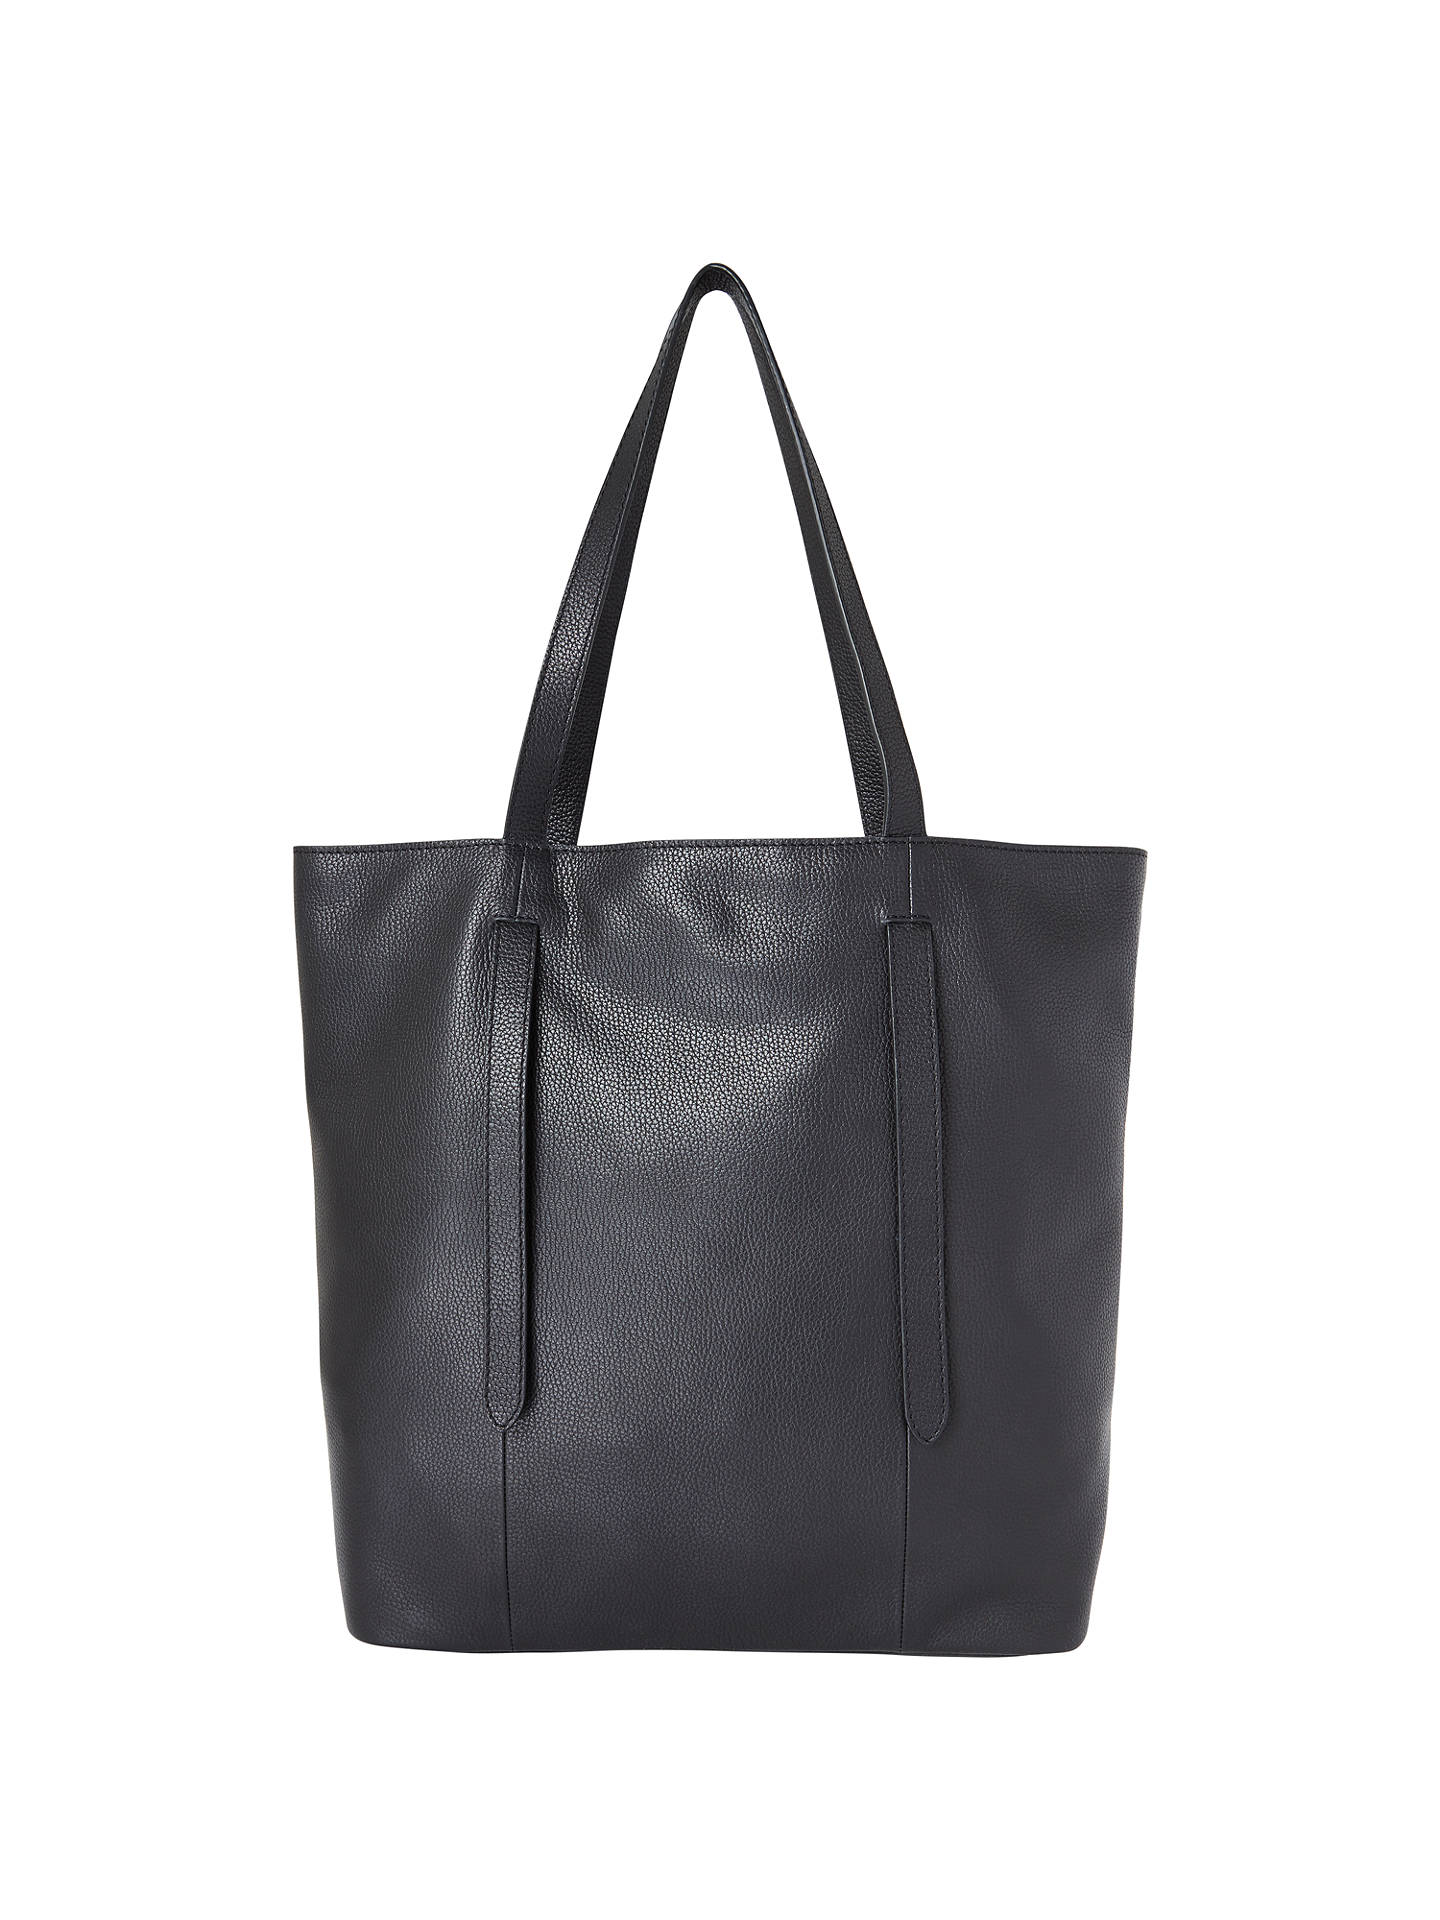 John Lewis Partners Cecilia Leather North South Tote Bag Black Online At Johnlewis